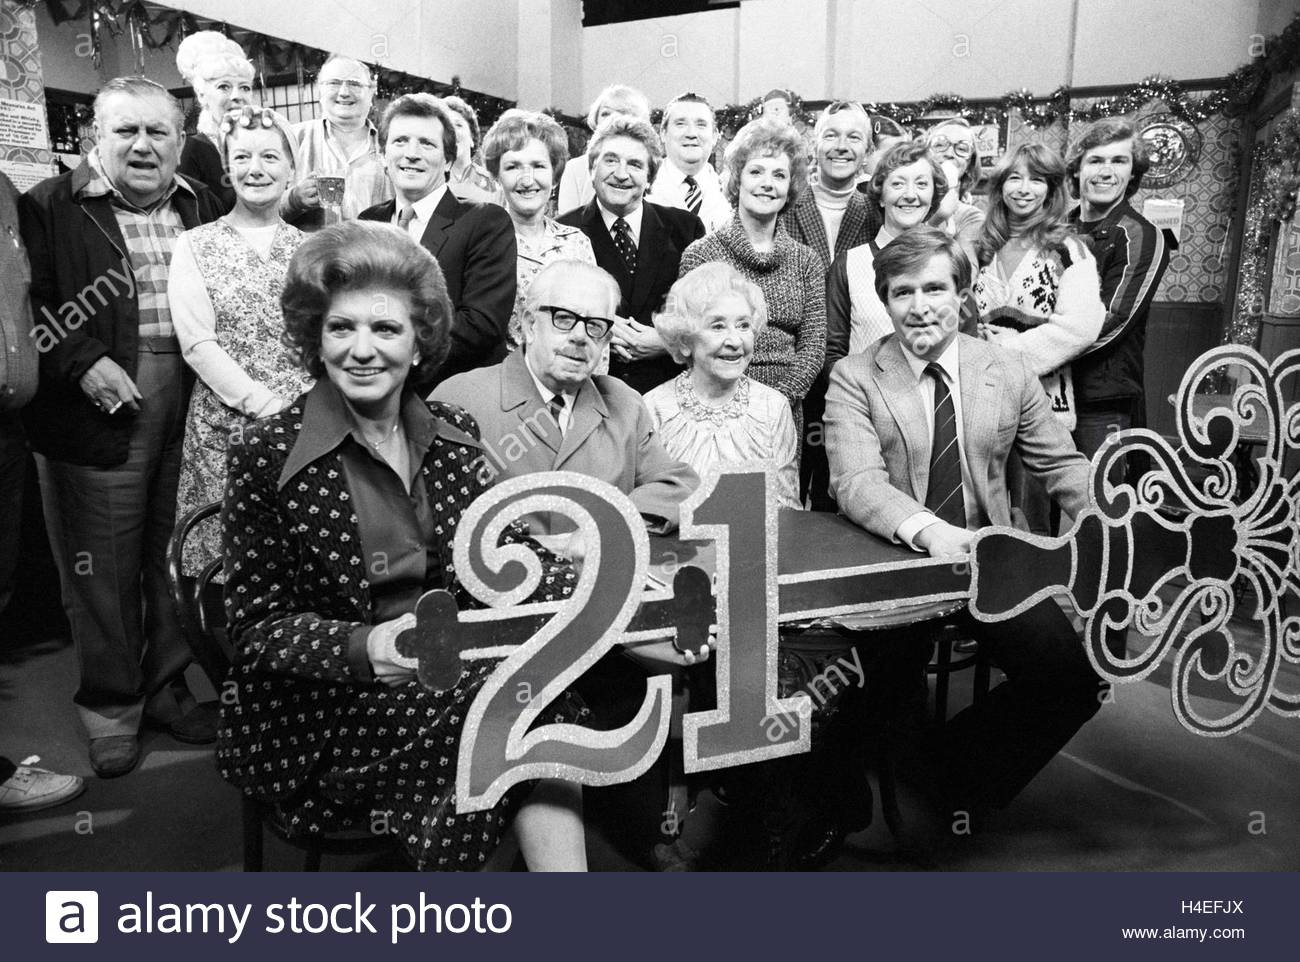 File photo dated 03/12/81 of a giant 21st birthday key for the cast of Coronation Street, celebrating the soap opera's - Stock Image